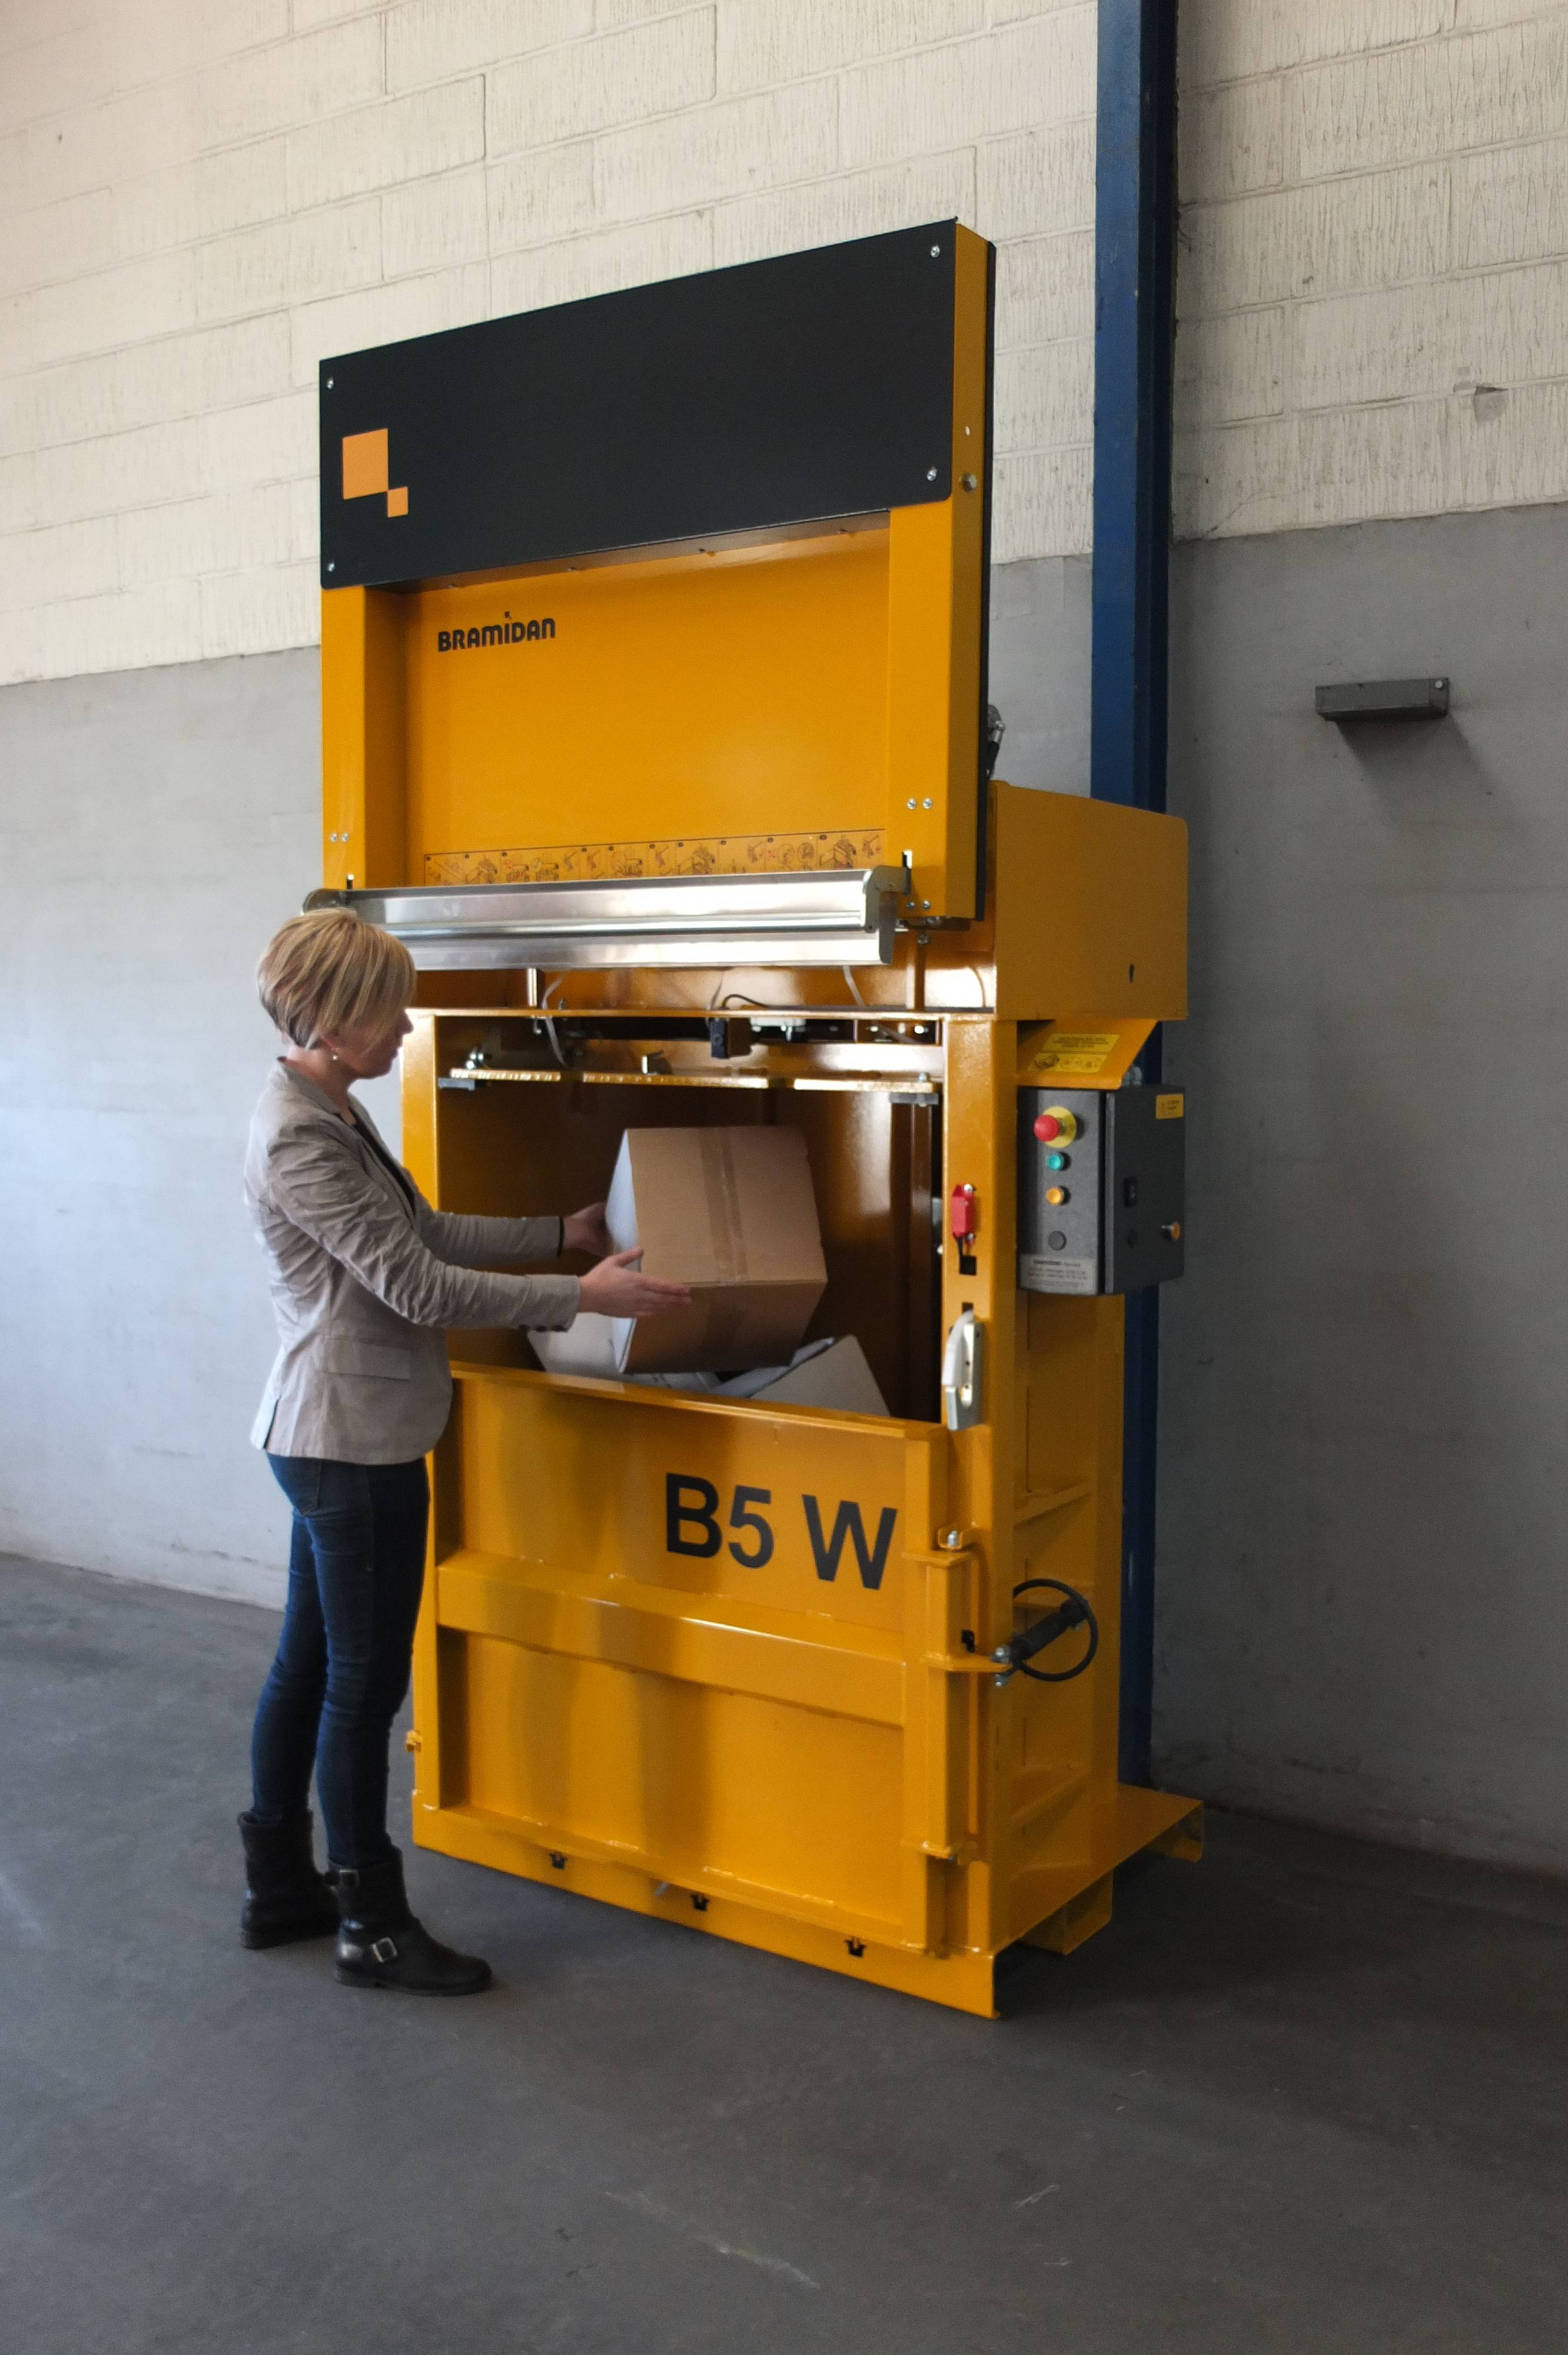 Bramidan B5W VD vertical baler supplied by Kenburn